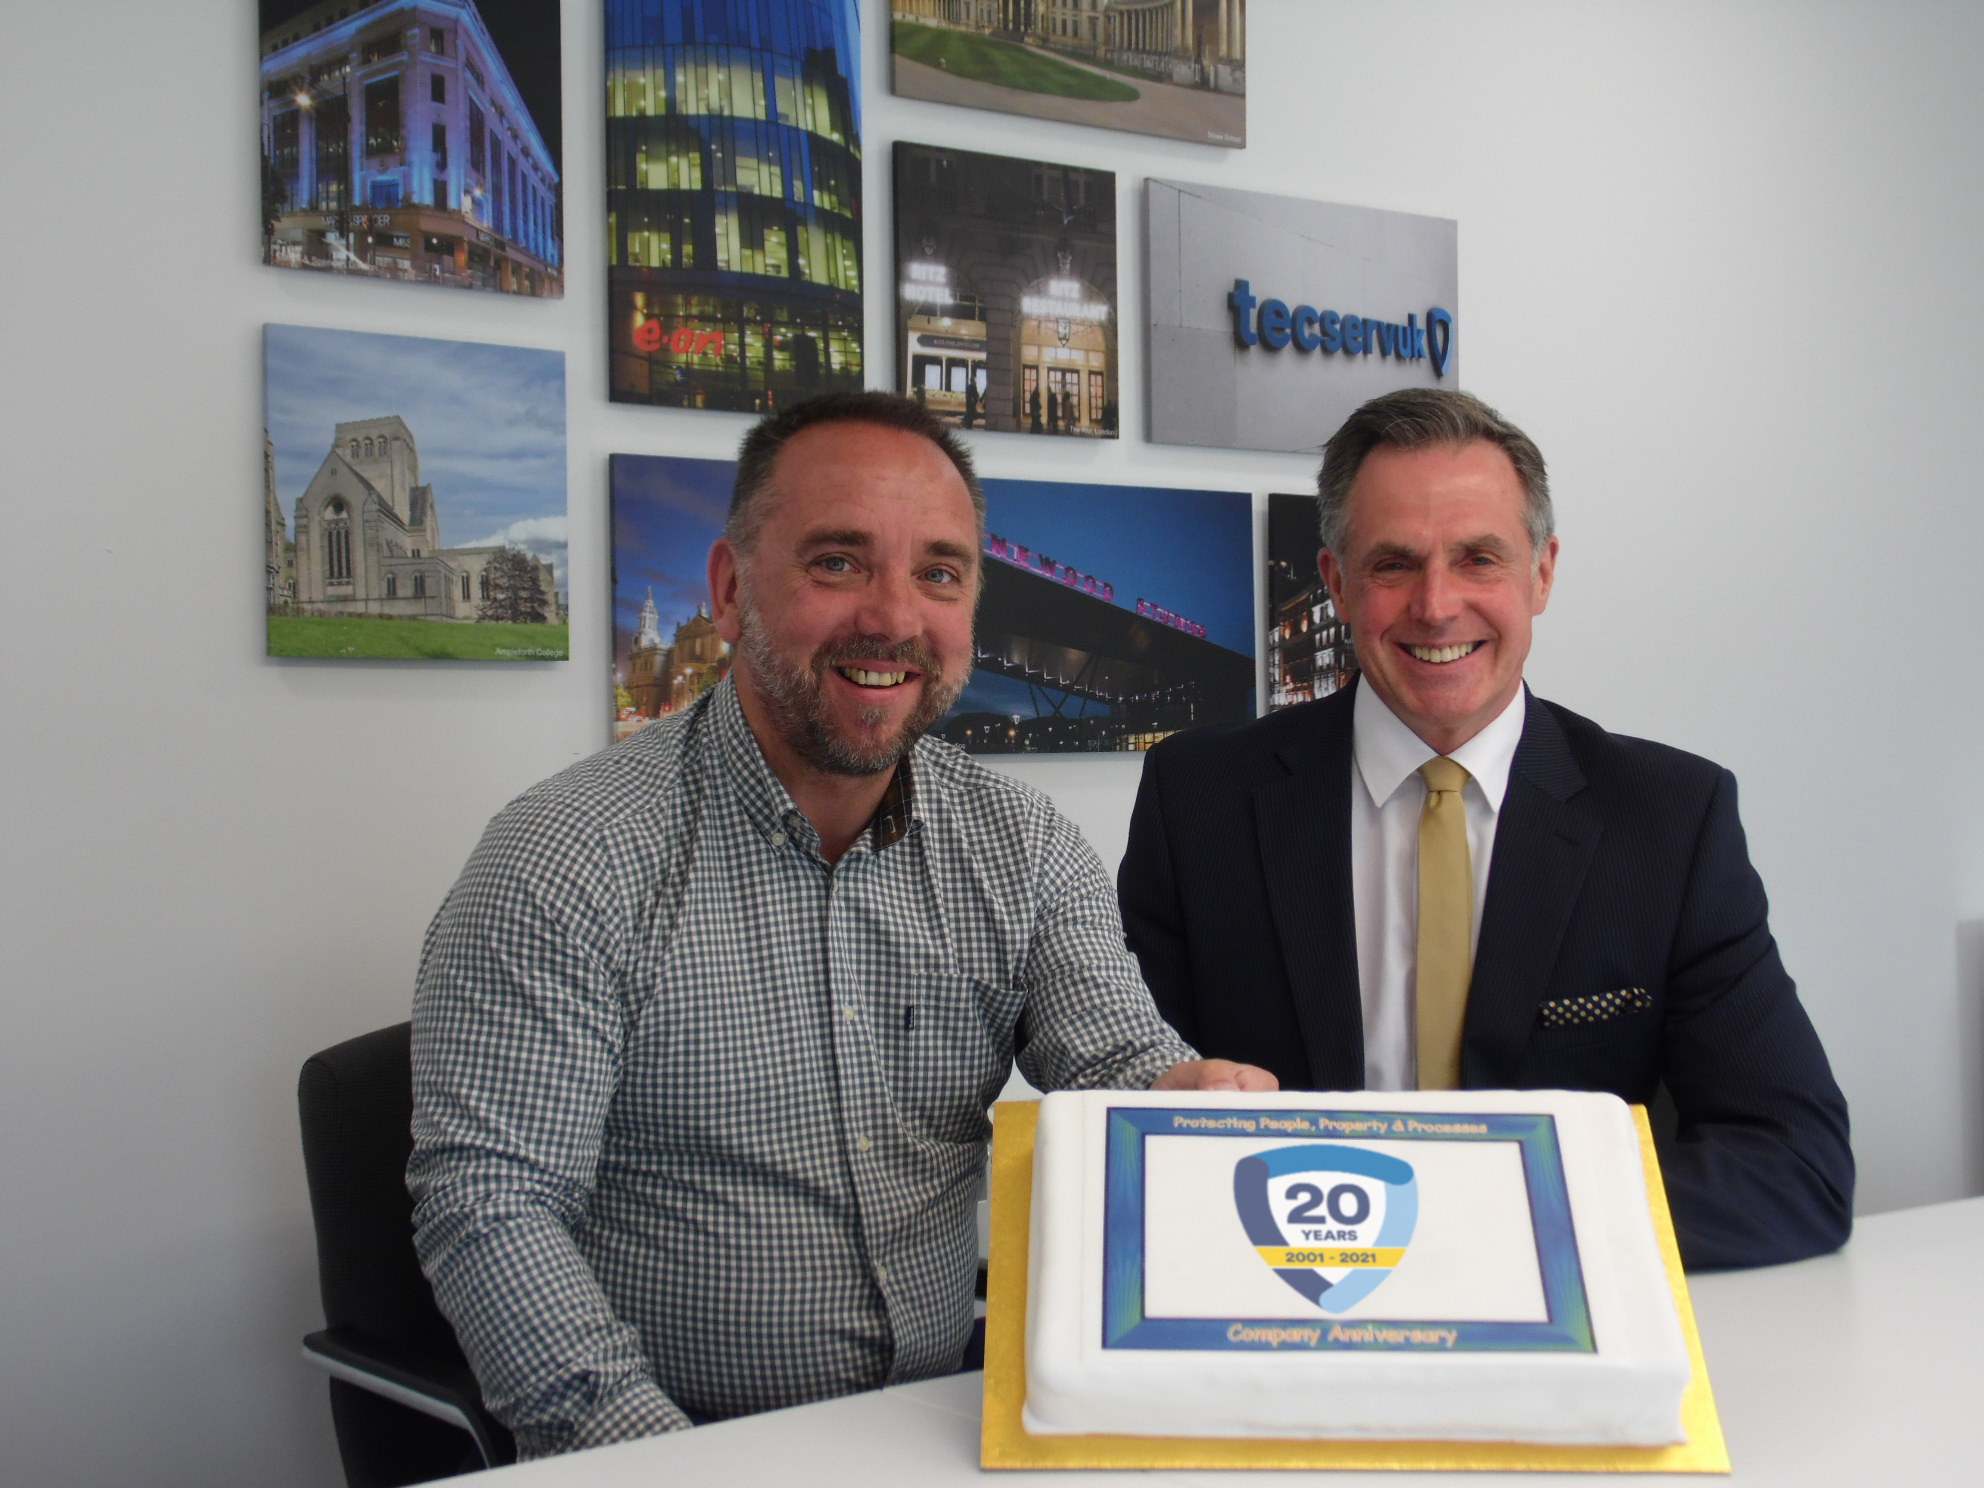 £1m PIPELINE HELPS FIRE & SECURITY FIRM CELEBRATE 20th ANNIVERSARY